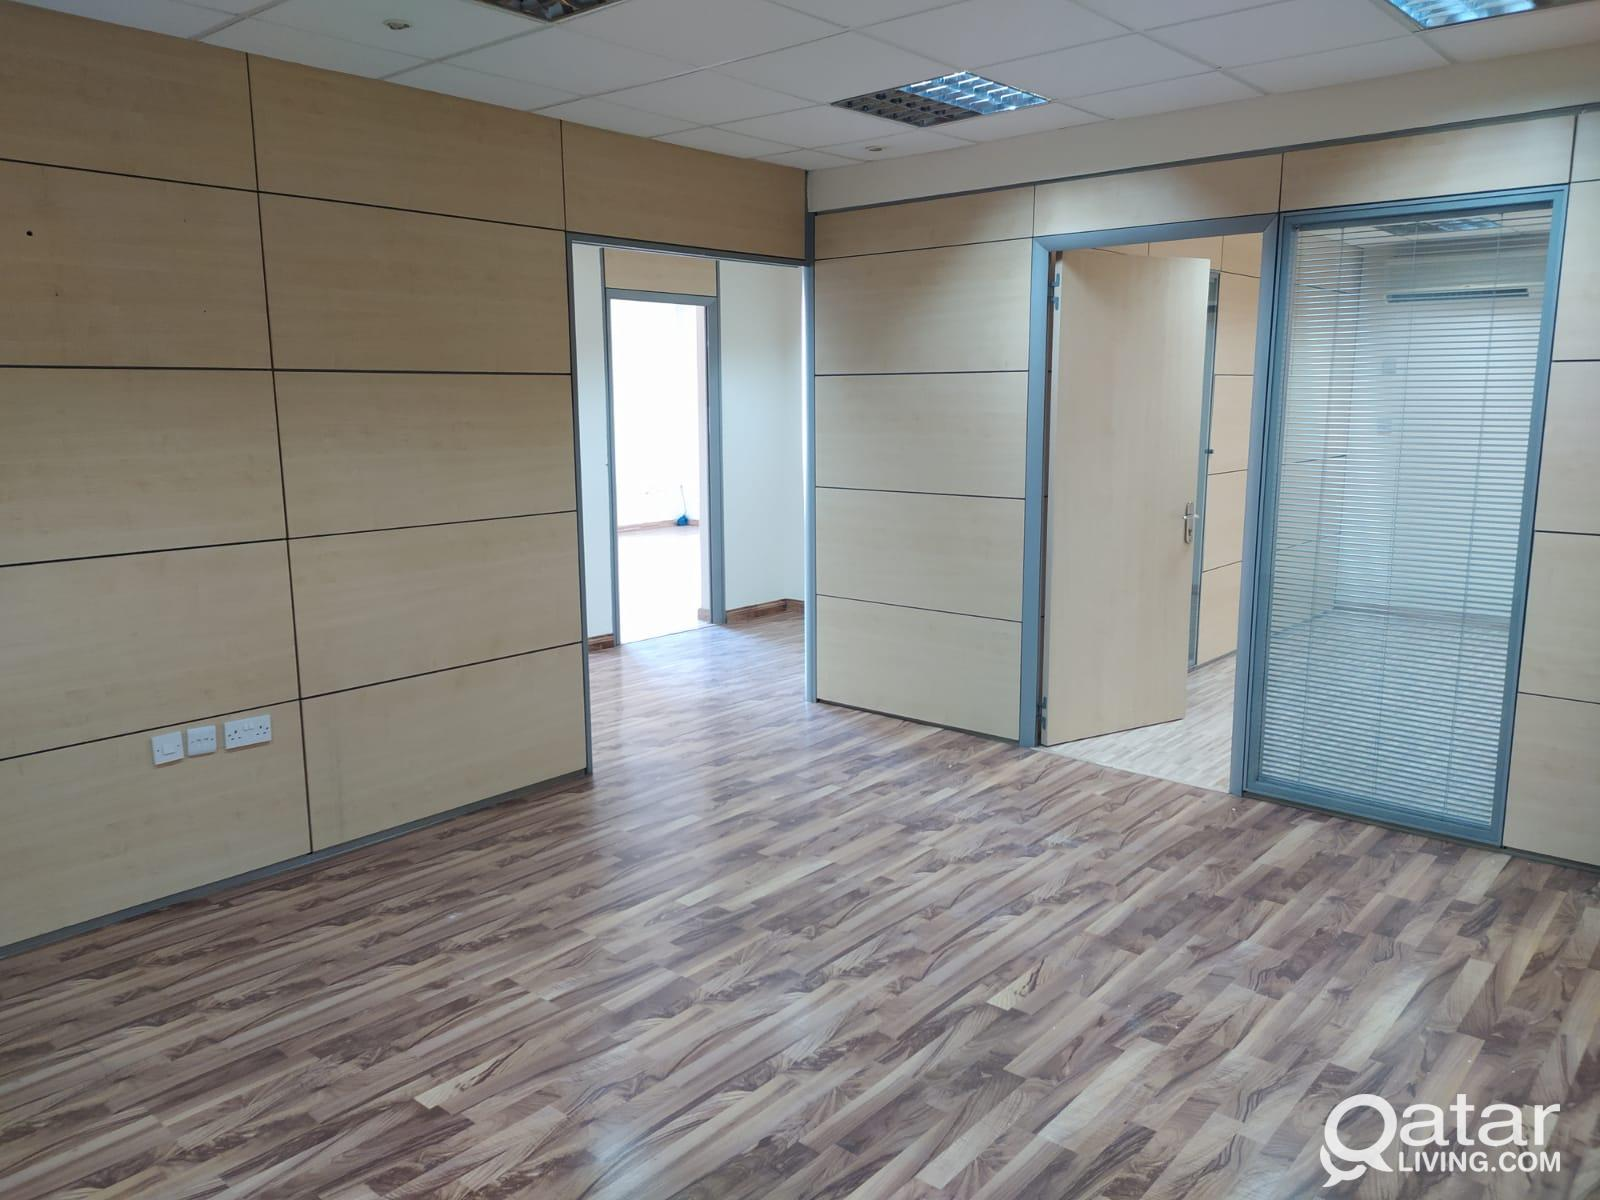 128 Sqm Partitioned Office with Parquet flooring i